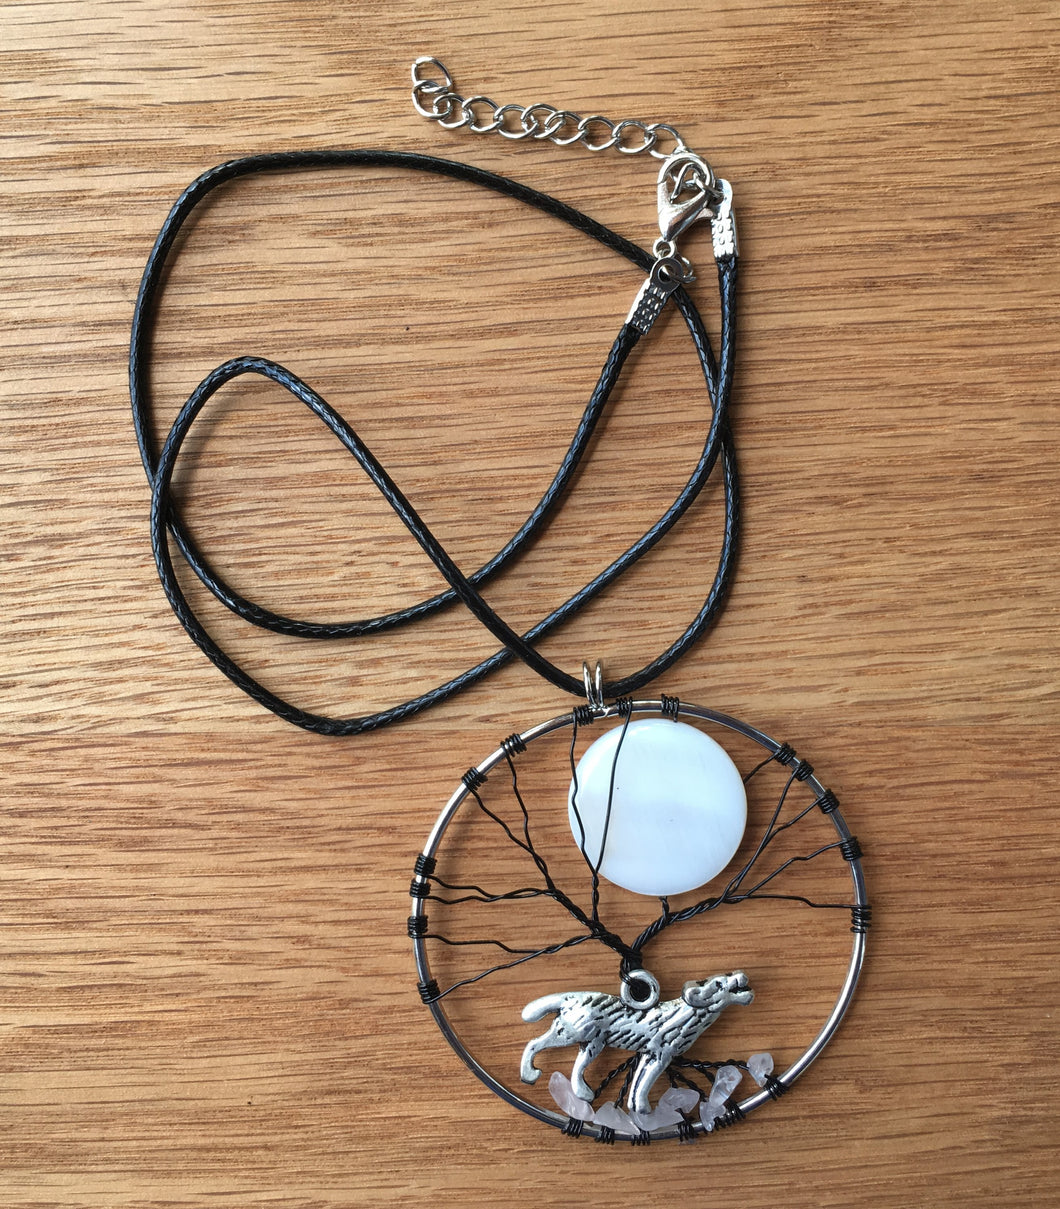 Necklace - Howl at the Moon Pendant